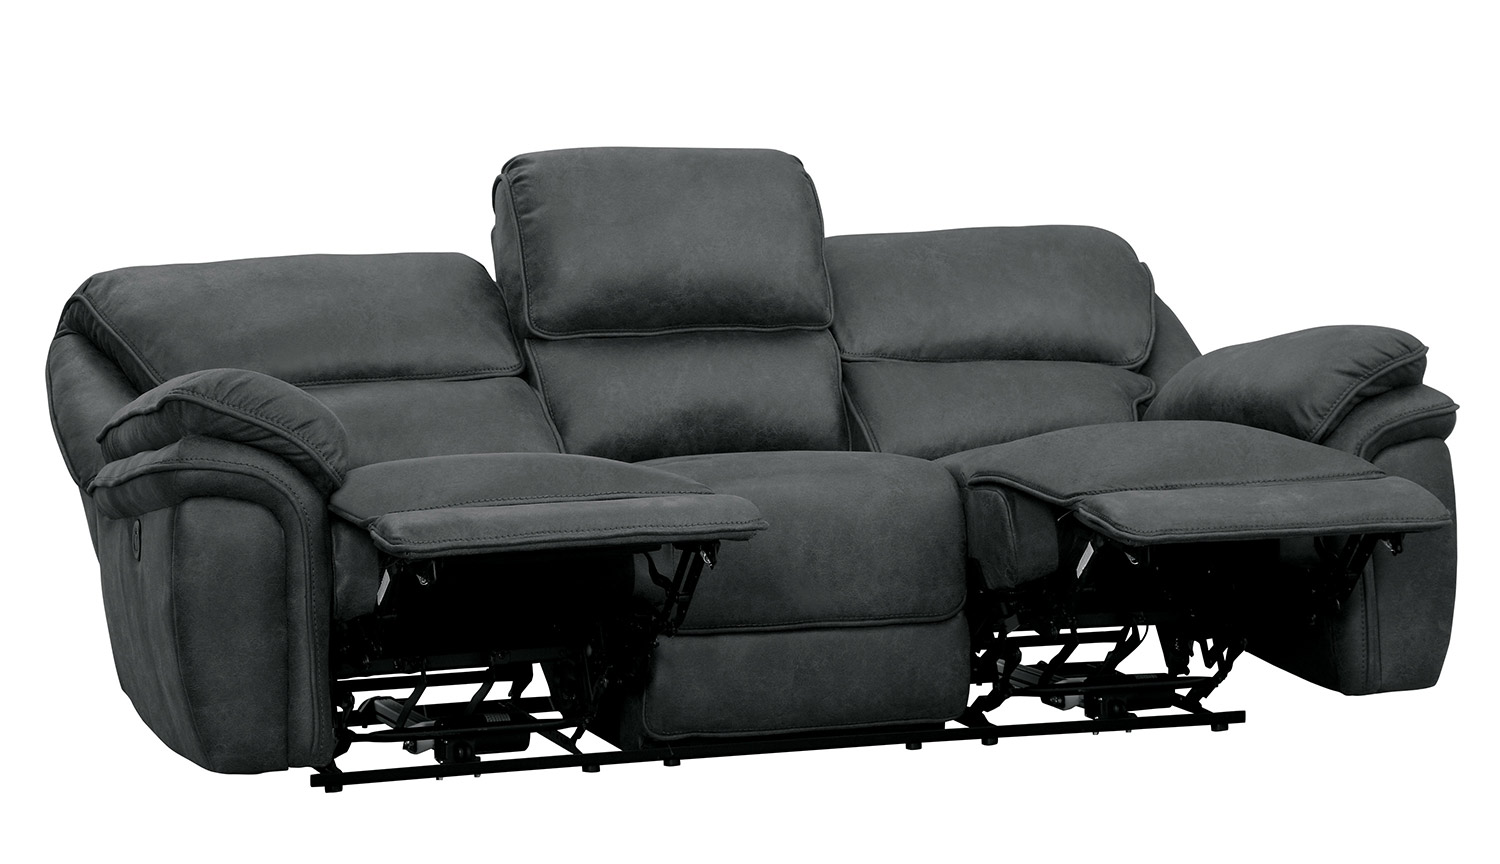 Homelegance Hadden Double Reclining Sofa - Gray